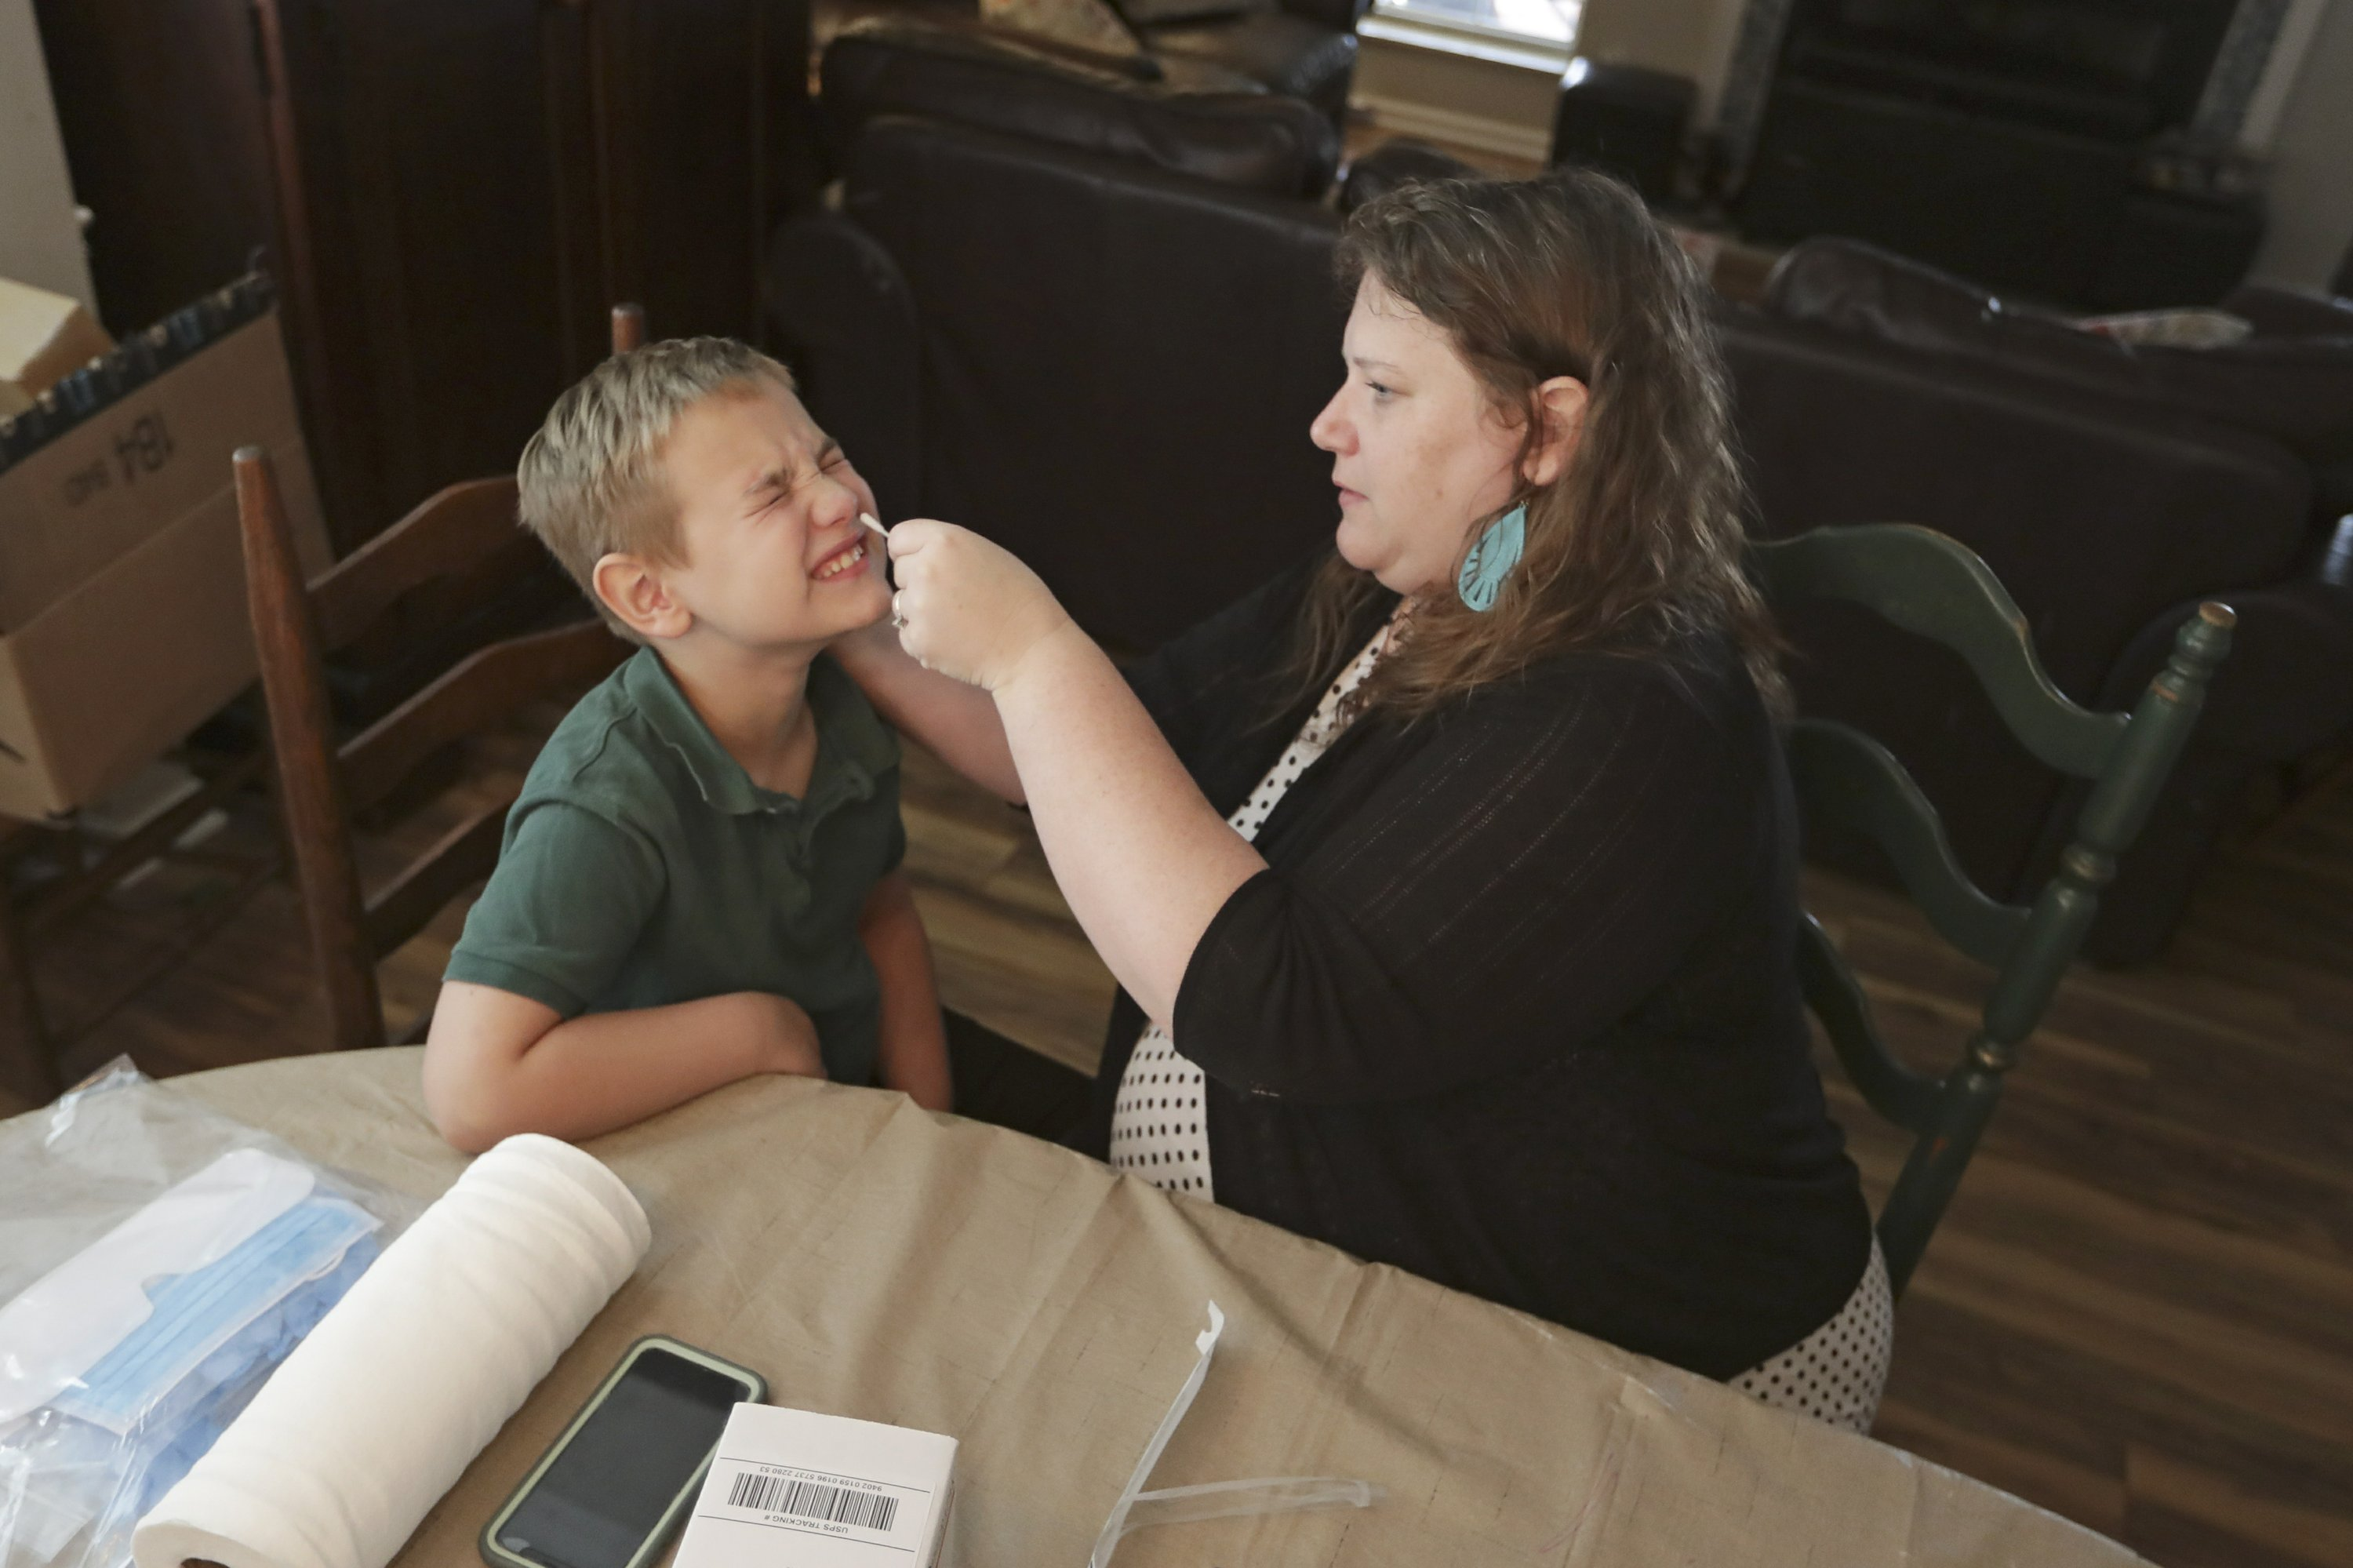 US youngsters, other folks assemble DIY exams for coronavirus science - The Associated Press thumbnail